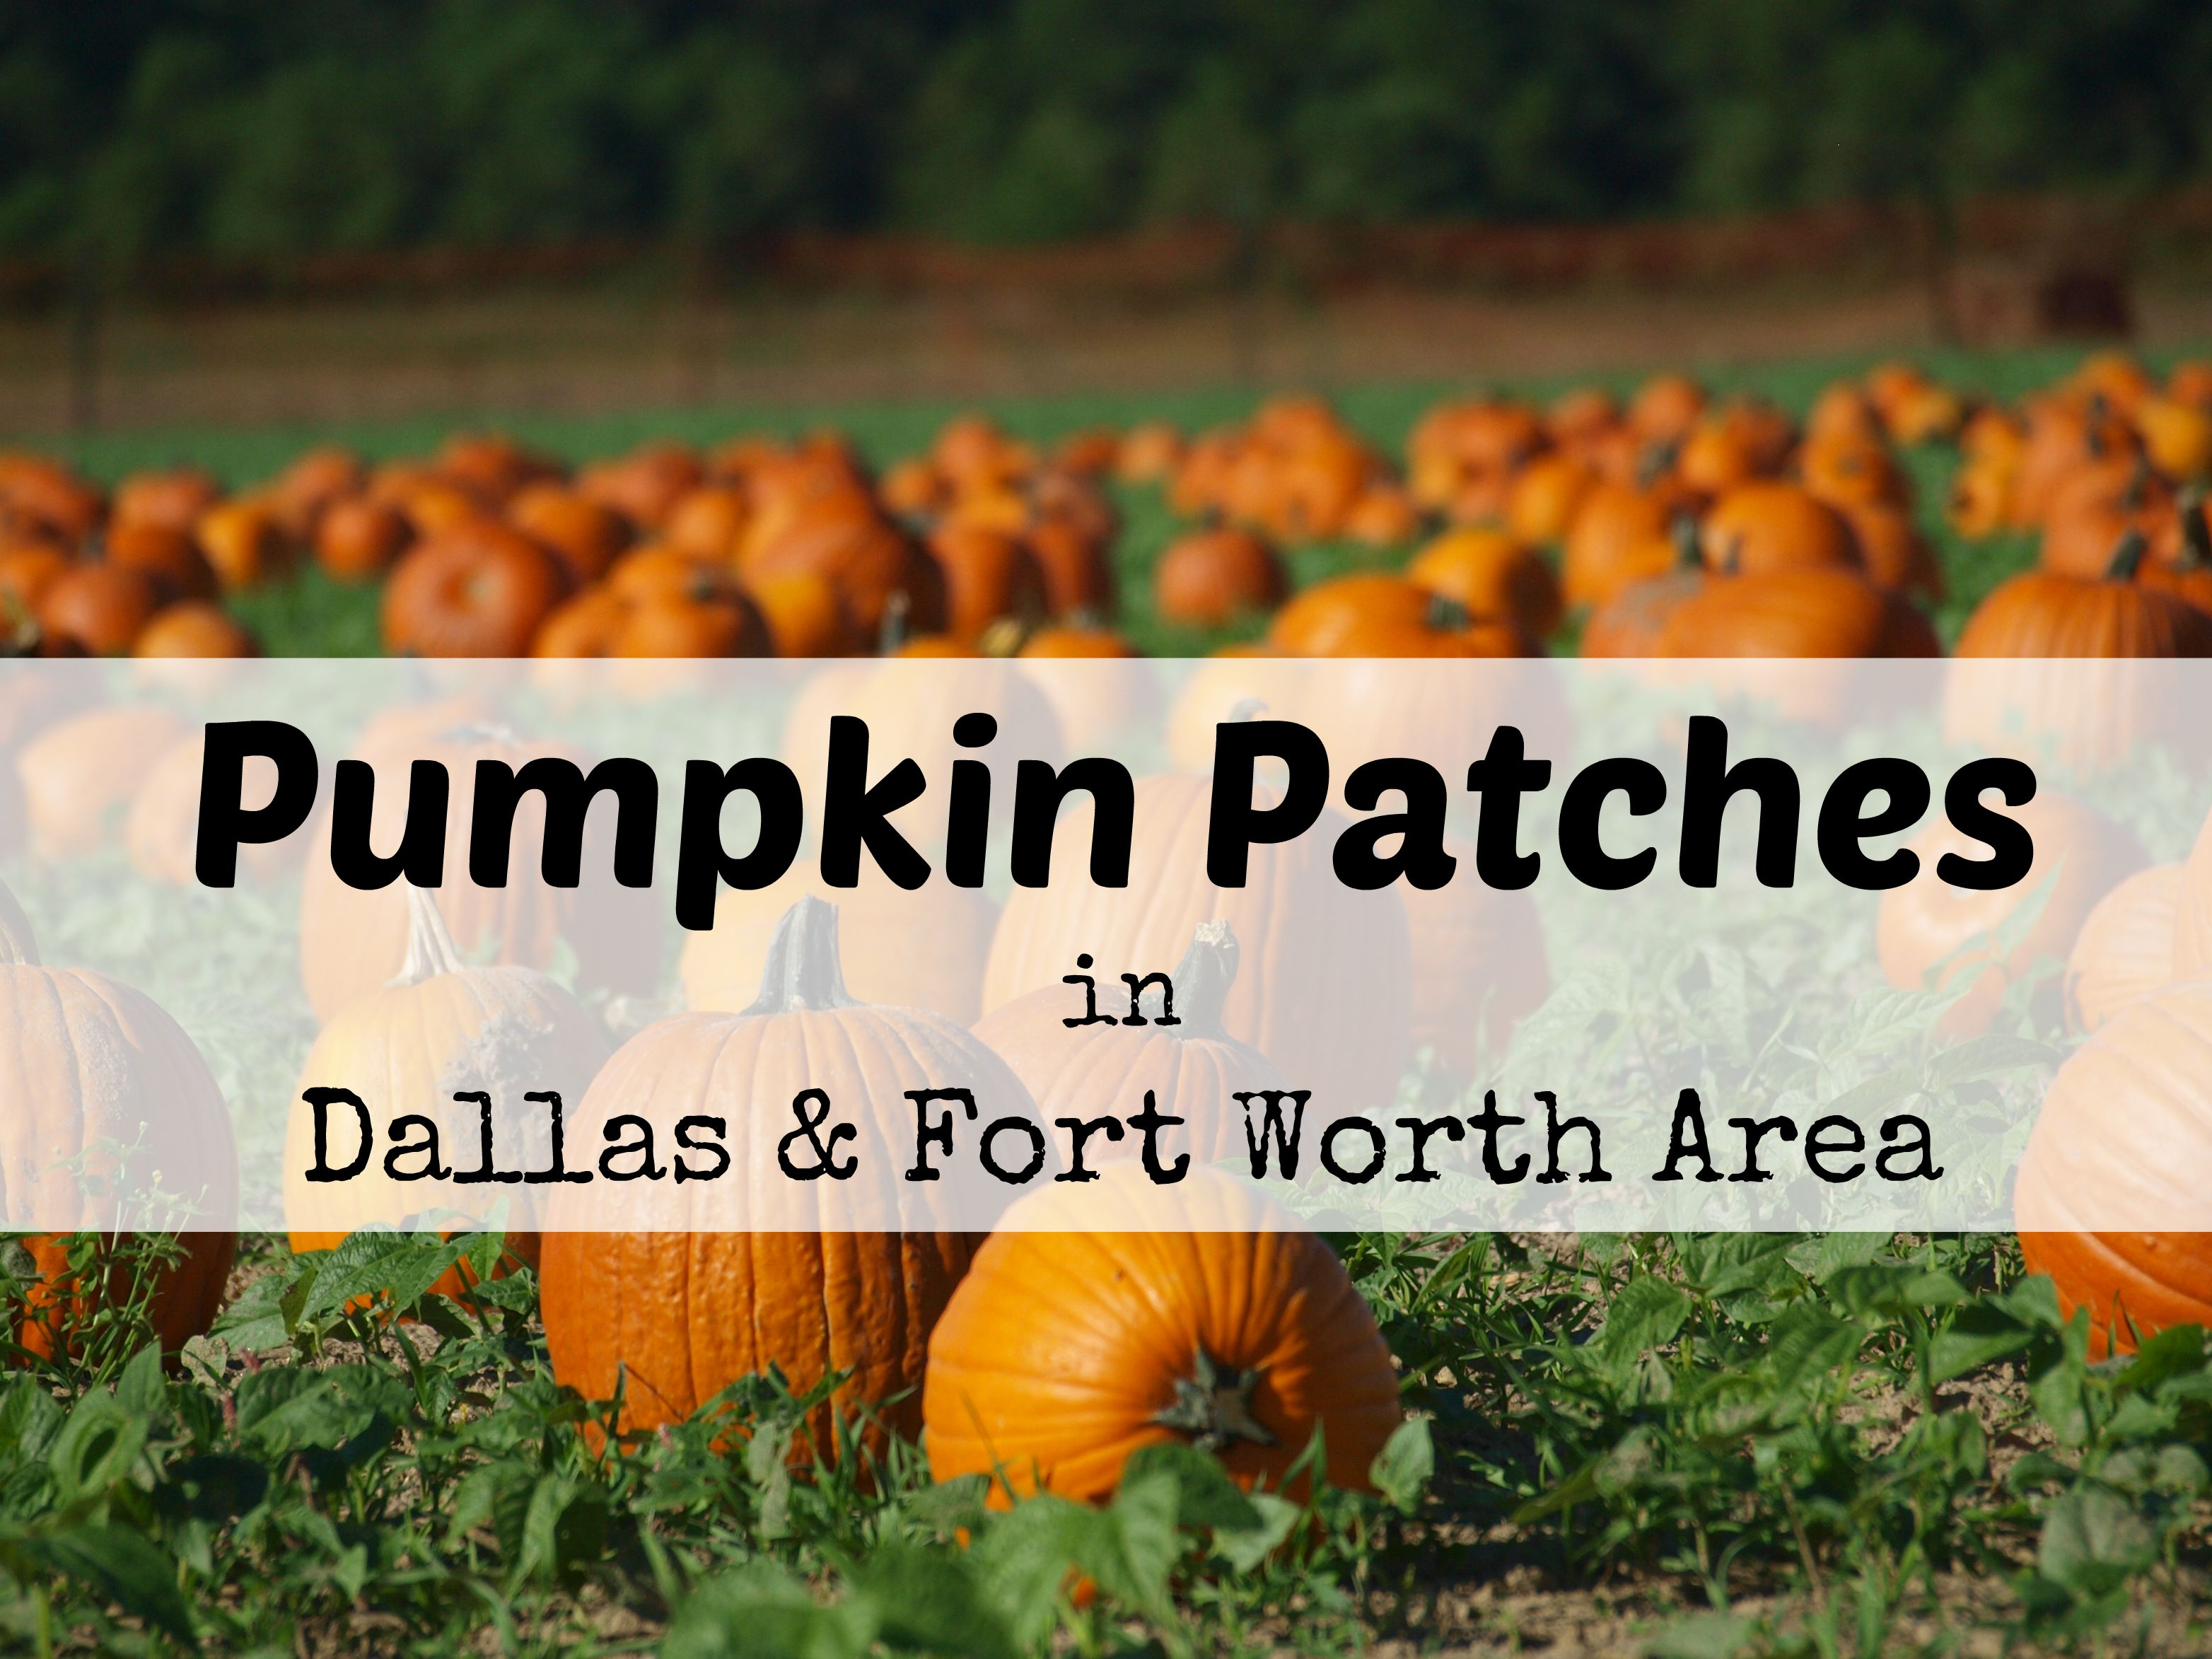 8 pumpkin patches to visit in north texas.